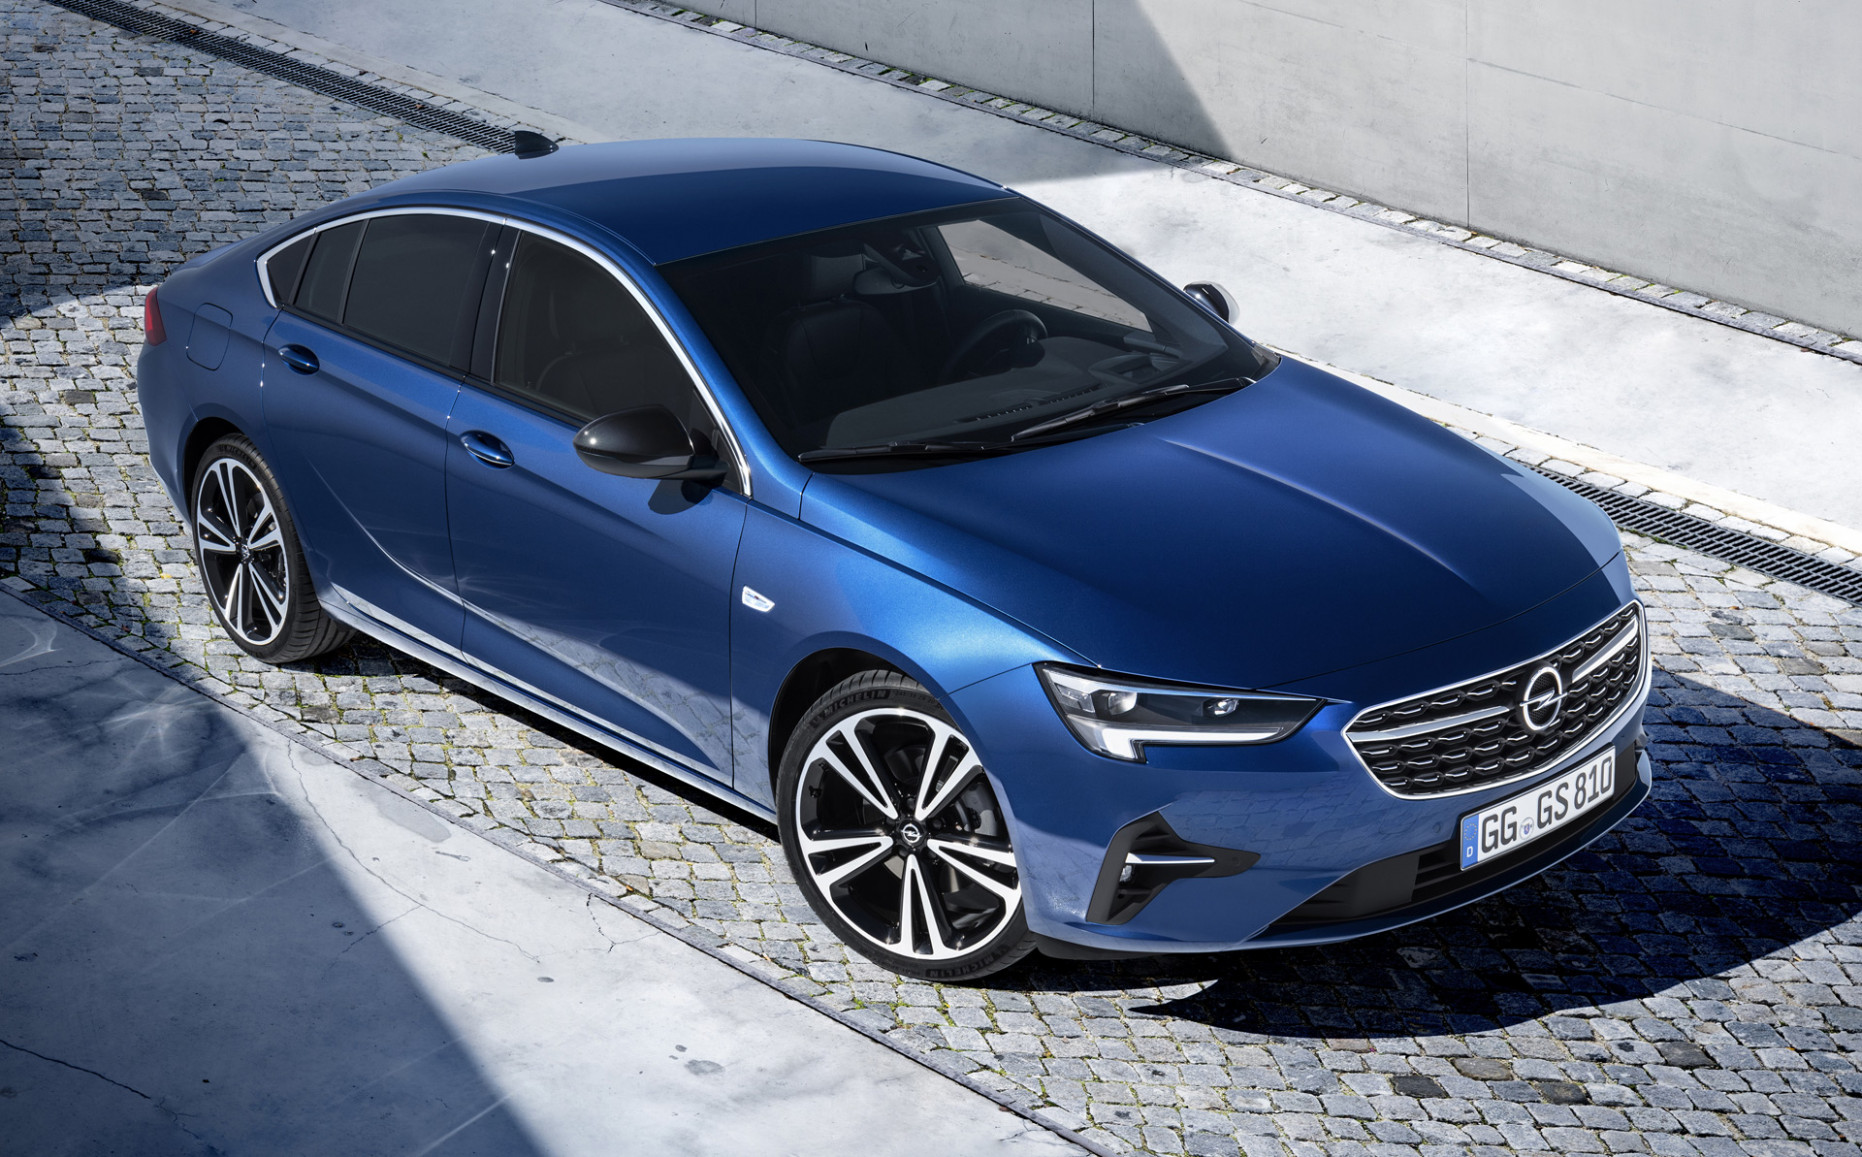 Buick Regal's Opel twin given an update